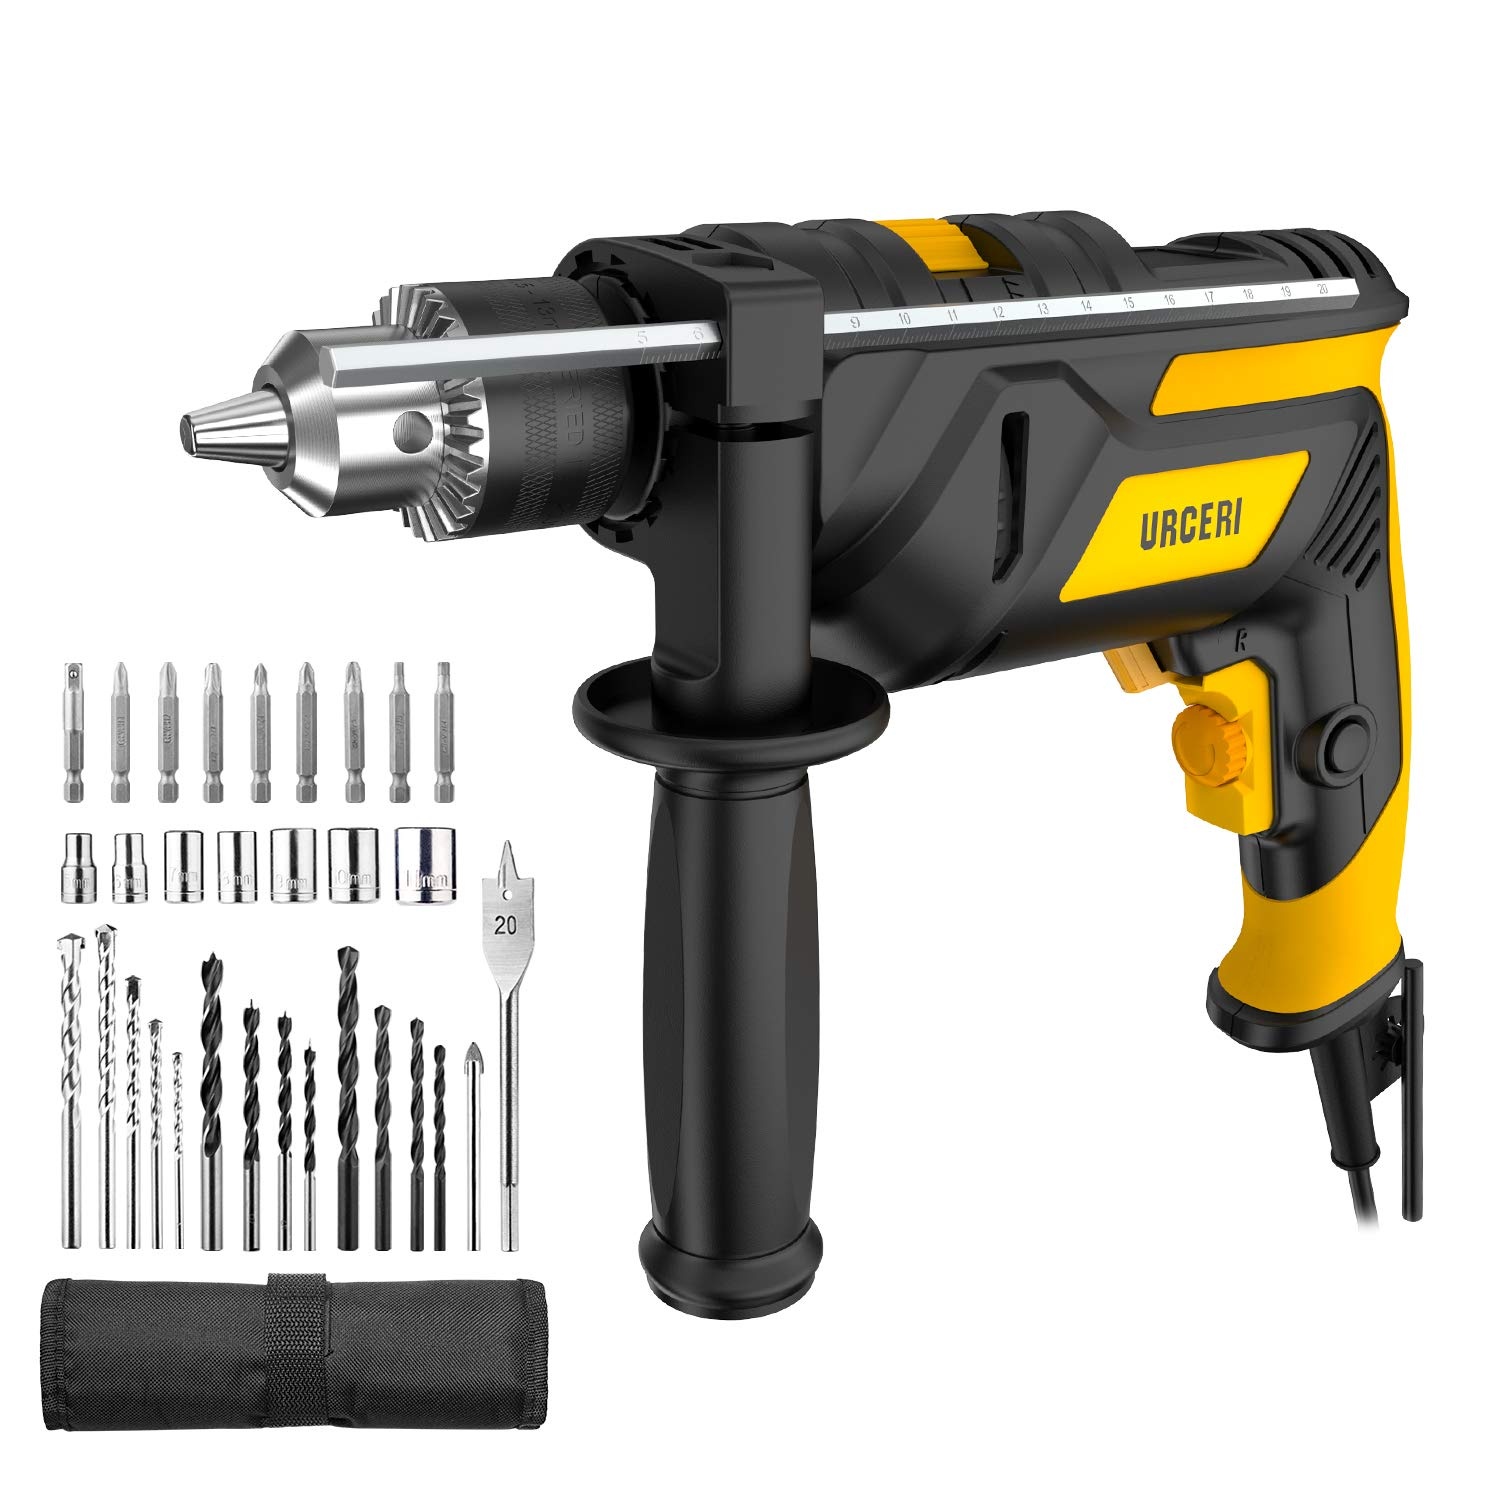 URCERI 2-in-1 Hammer Drill 710W 3000RPM Powerful Impact Drill and Driver,  360° Rotatable Auxiliary Handle Variable Speed with 31pcs Accessories Kit